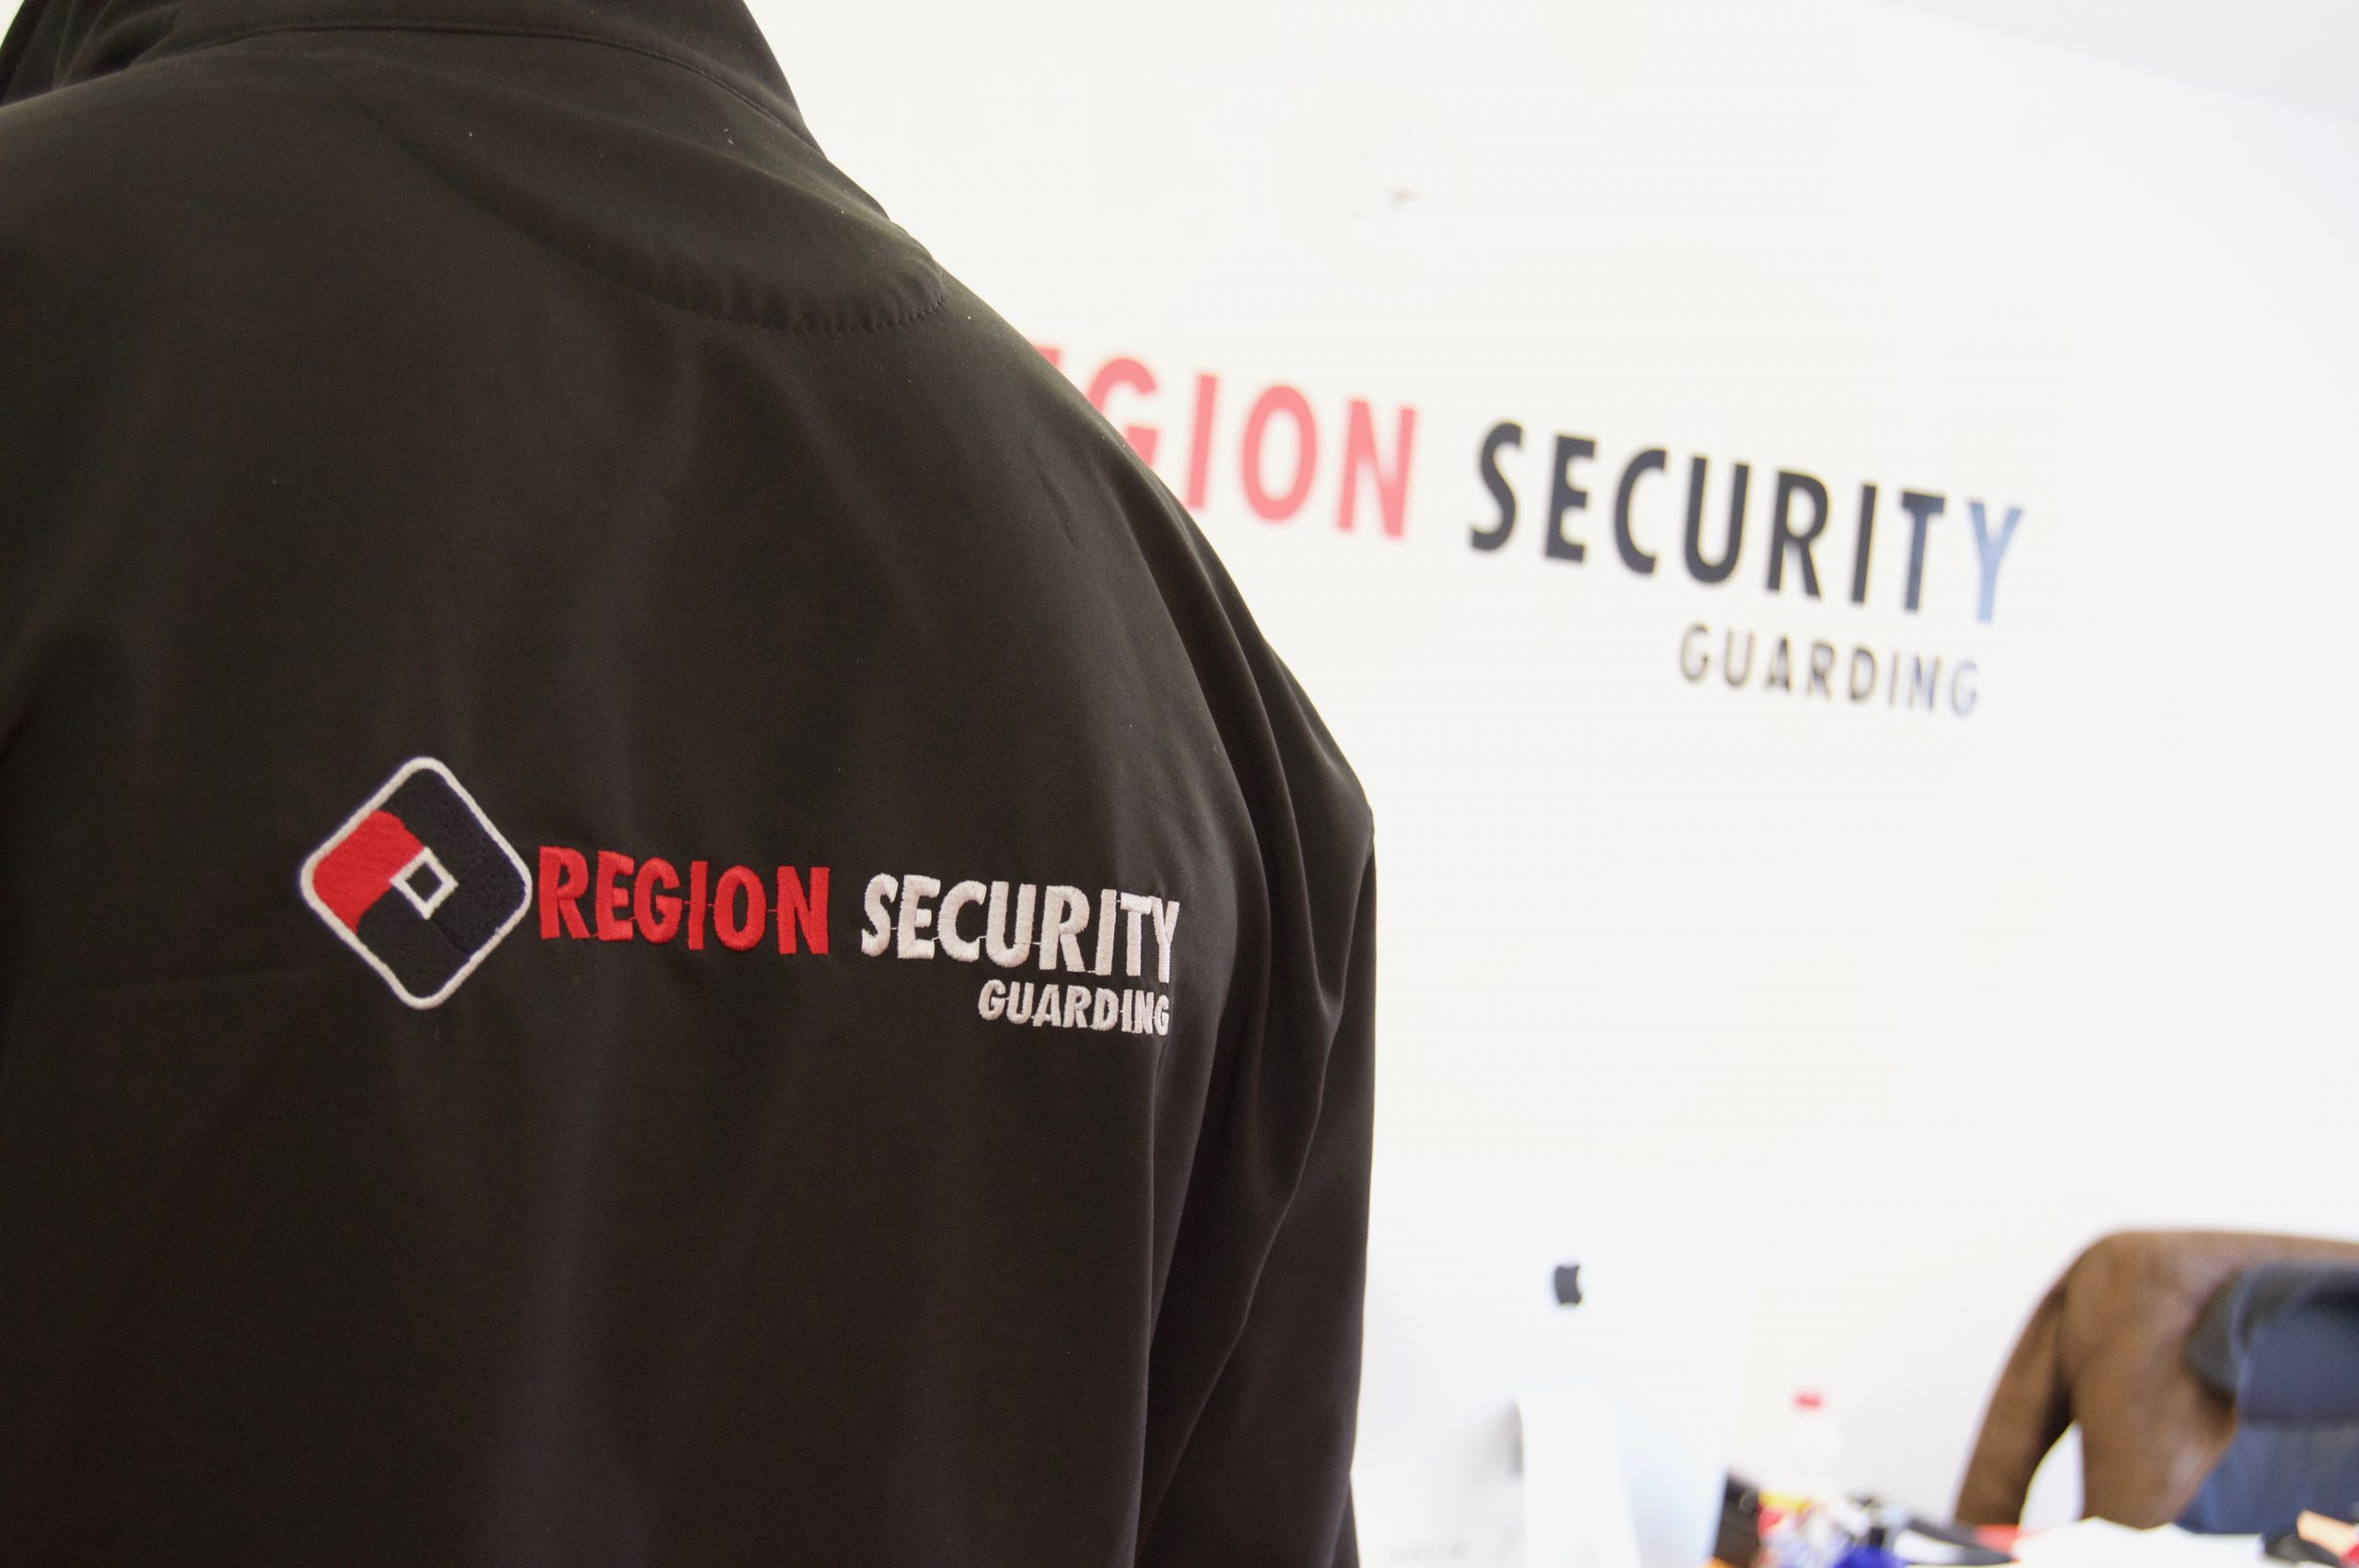 Public security guard services